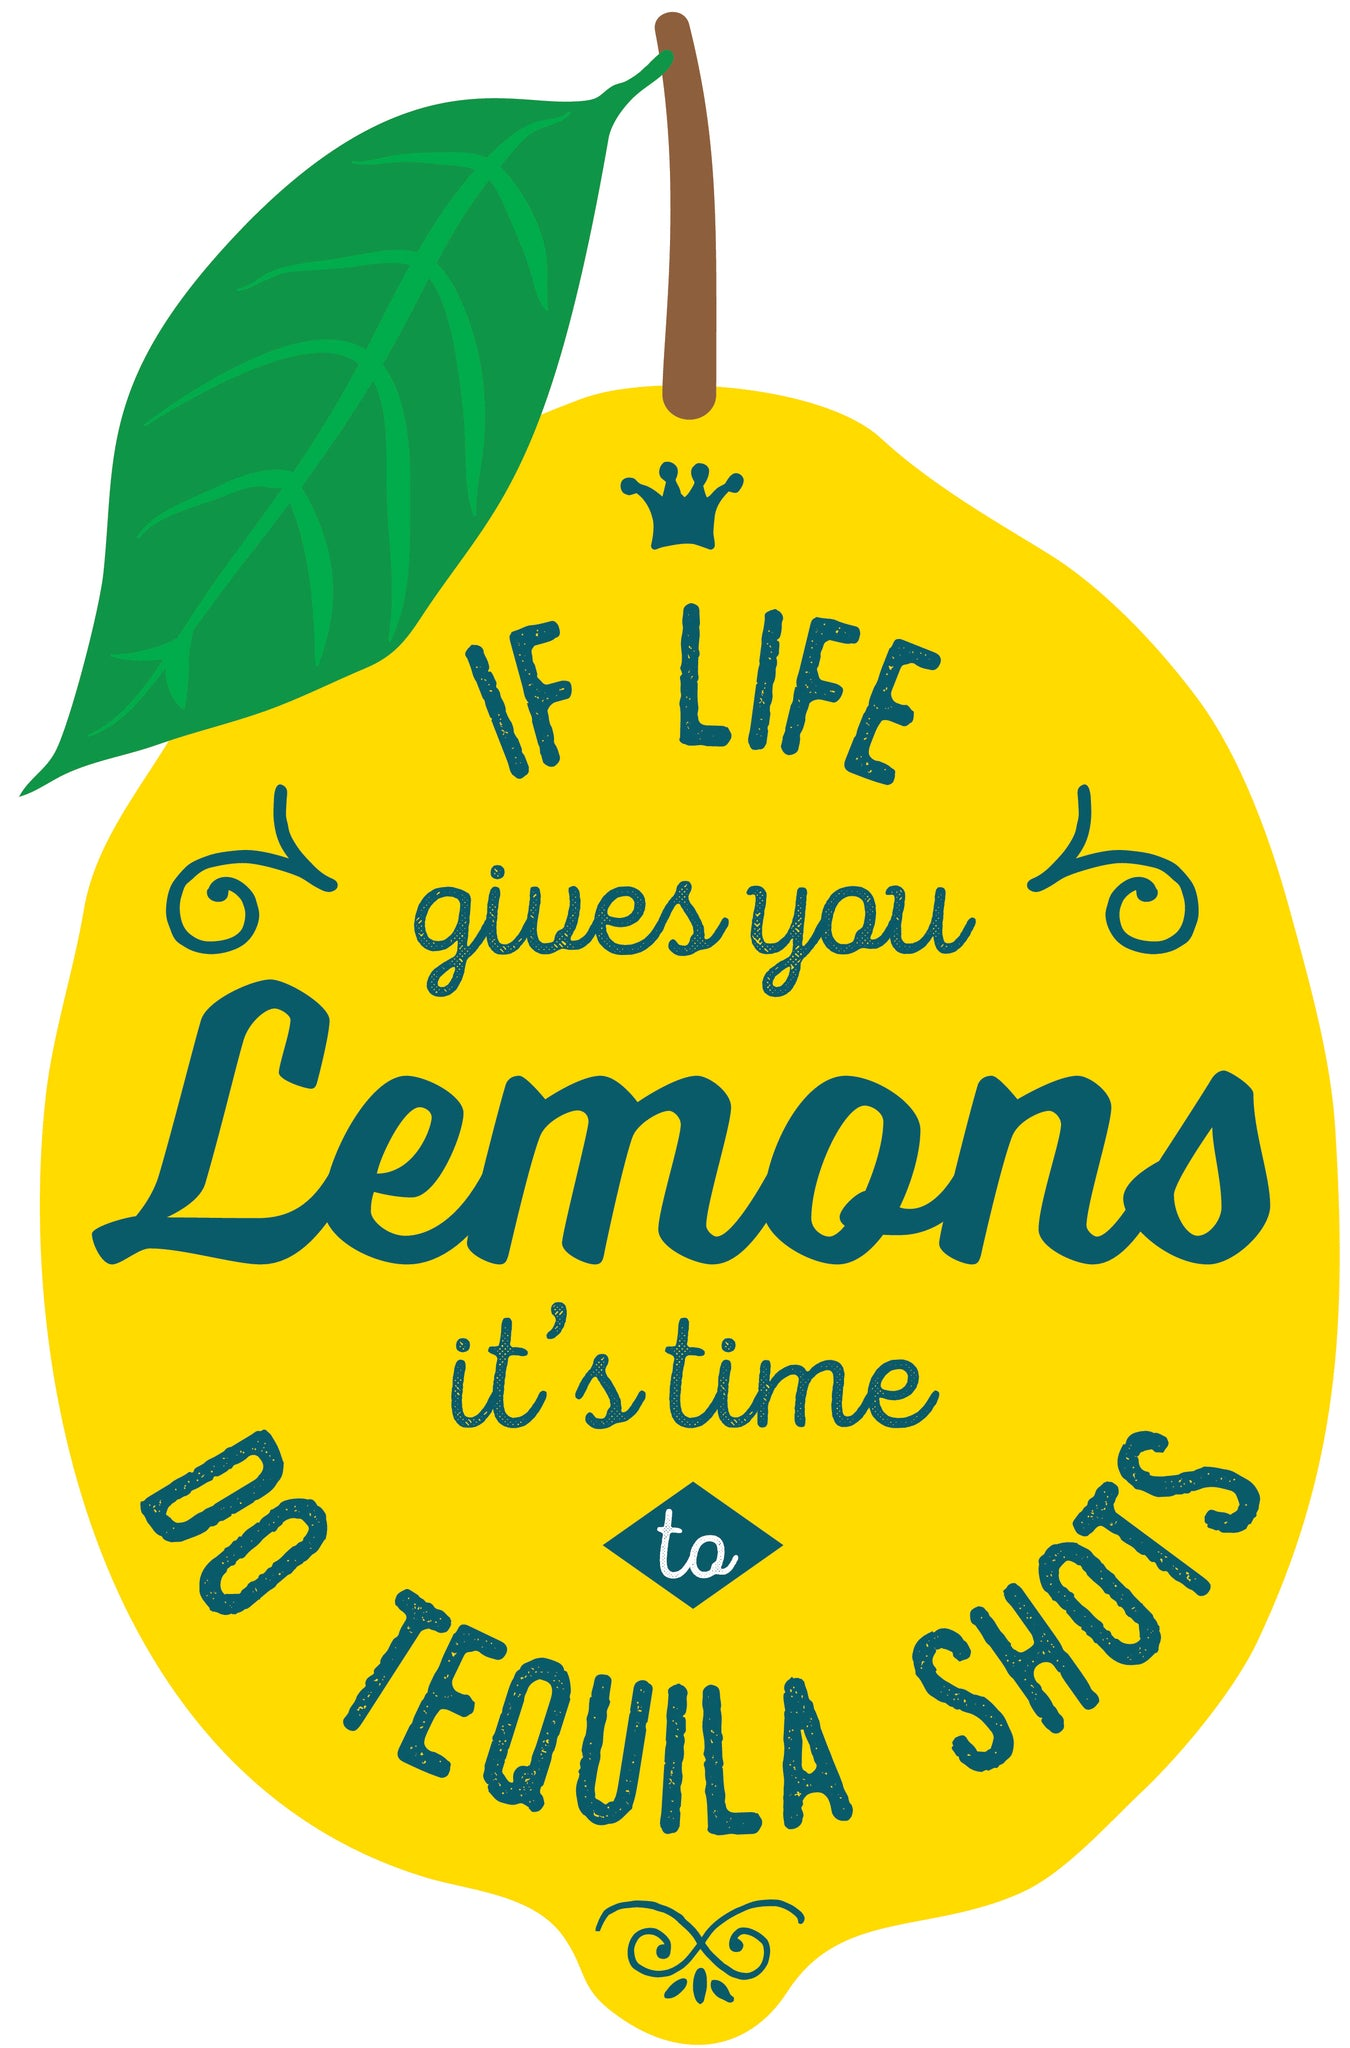 If Life Gives You Lemons It's Time to Do Tequila Shots Lemon Icon Vinyl Decal Sticker